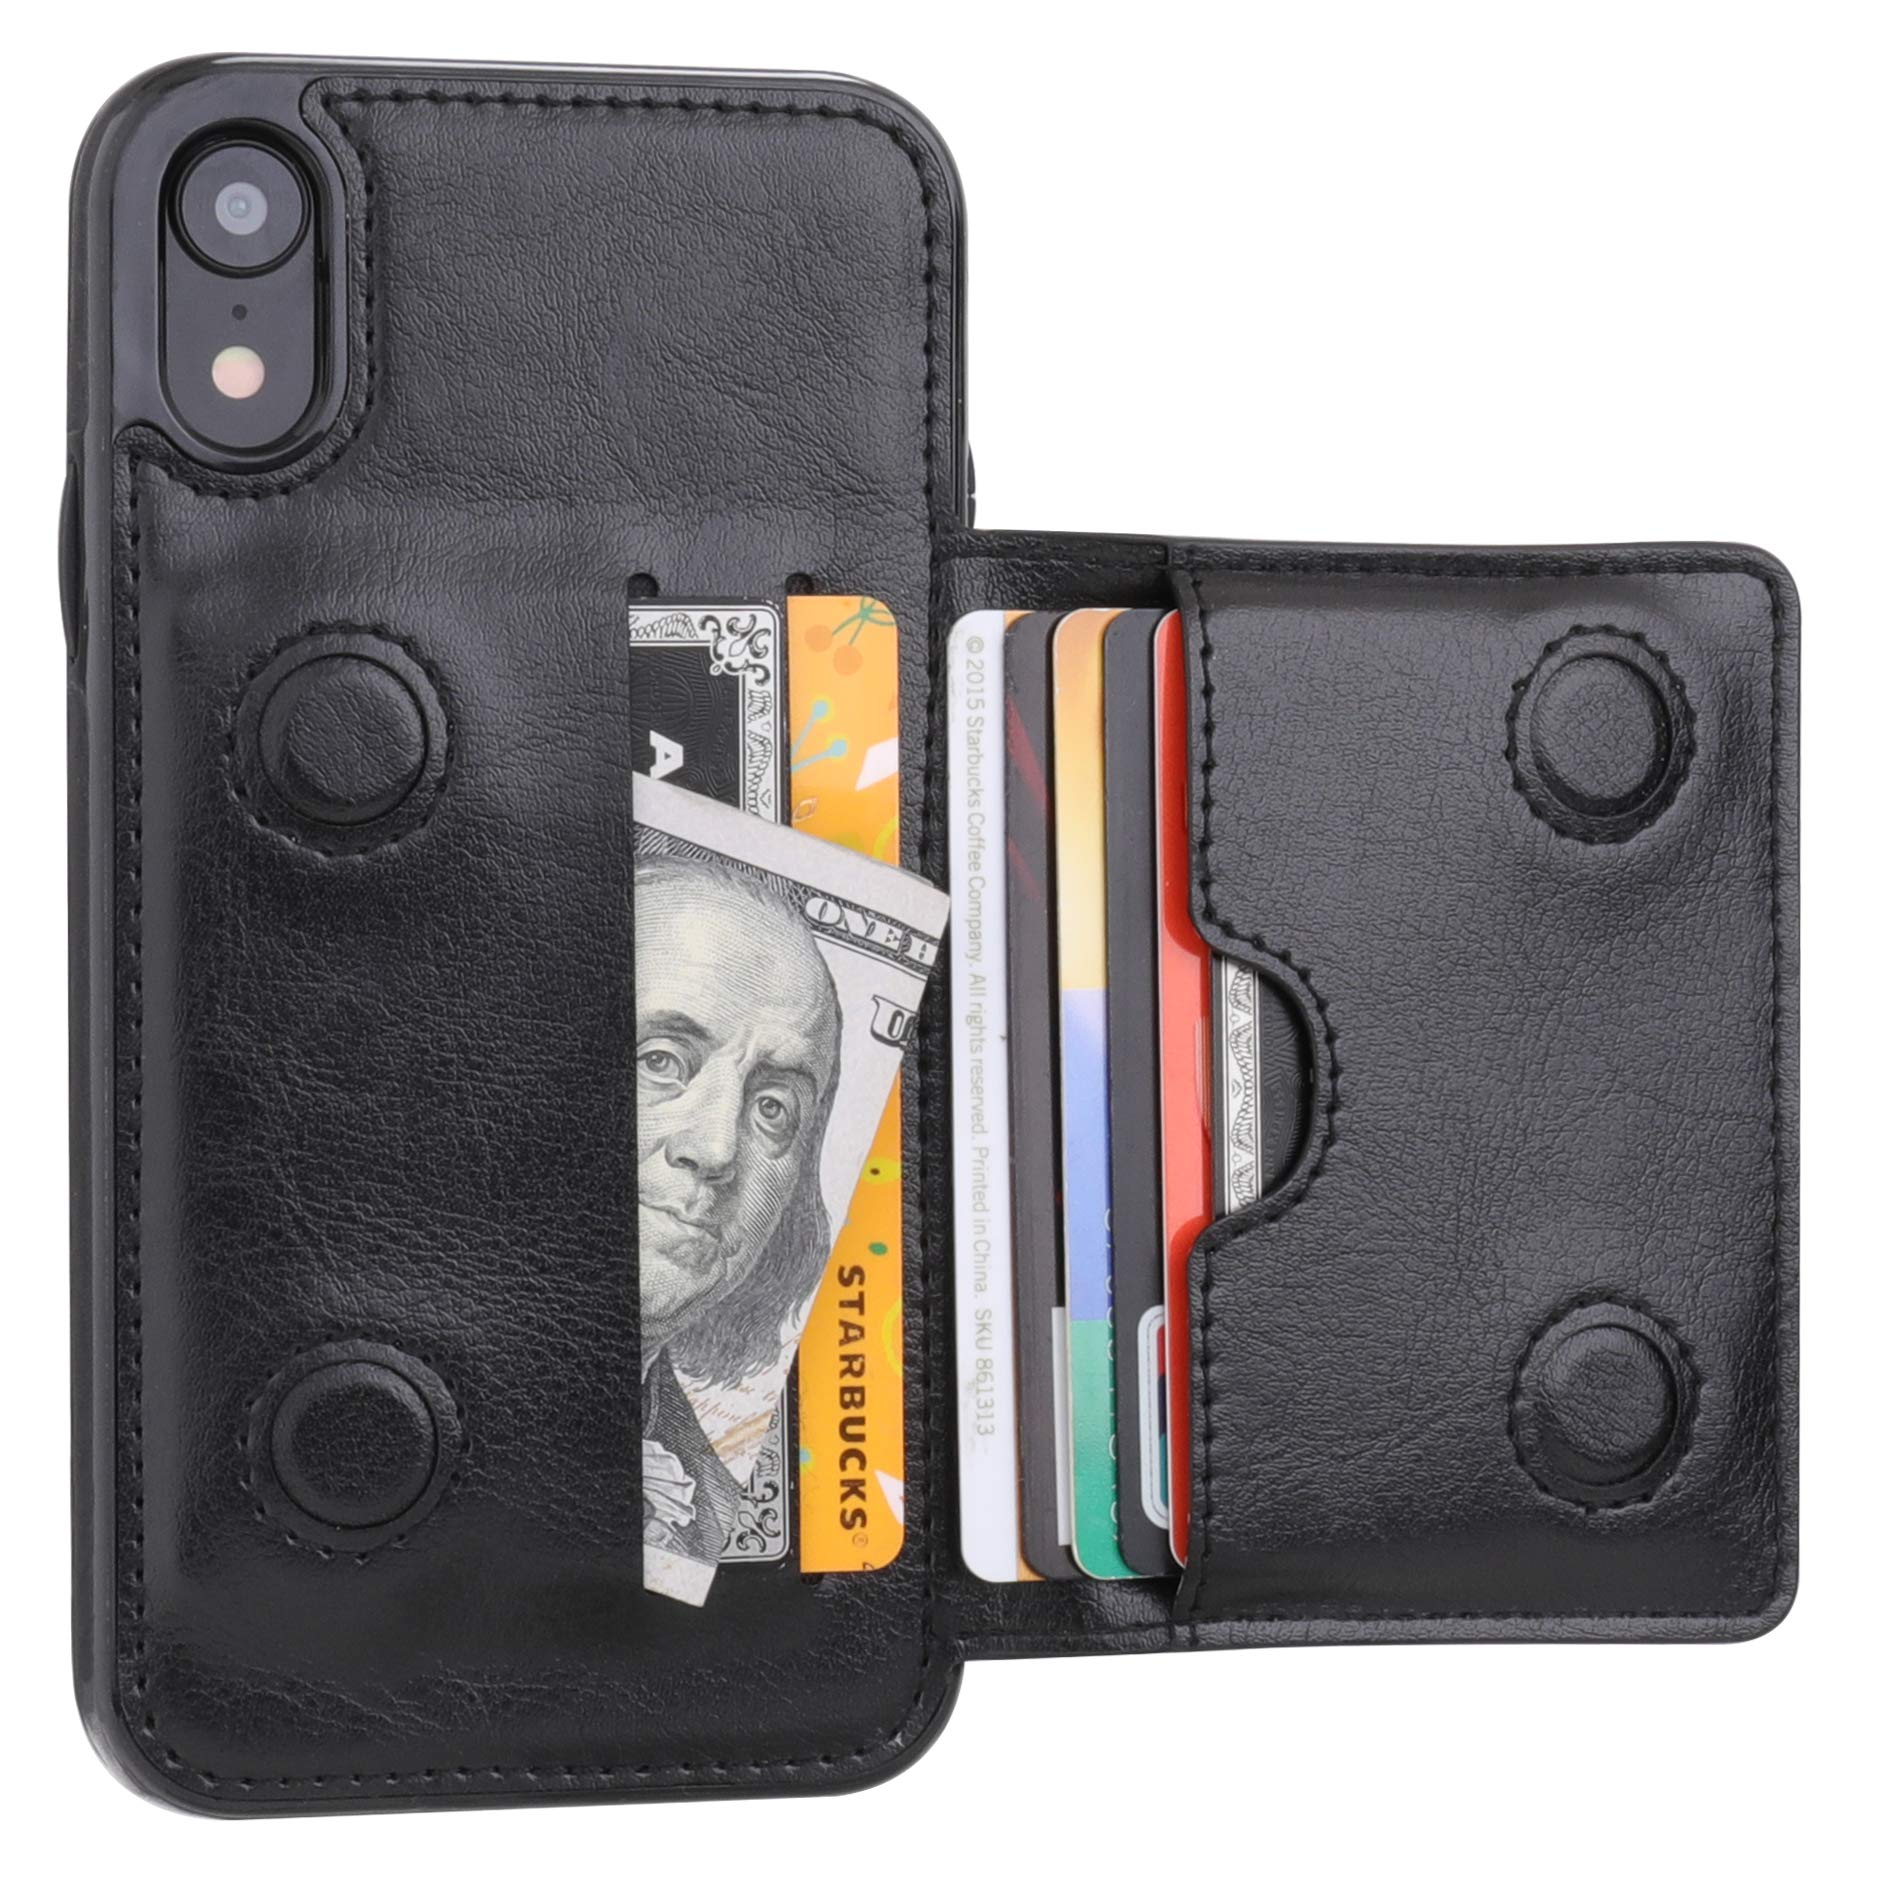 iPhone XR Wallet Case Credit Card Holder, KIHUWEY Premium Leather Kickstand Durable Shockproof Protective Cover iPhone XR 6.1 Inch(Black) by KIHUWEY